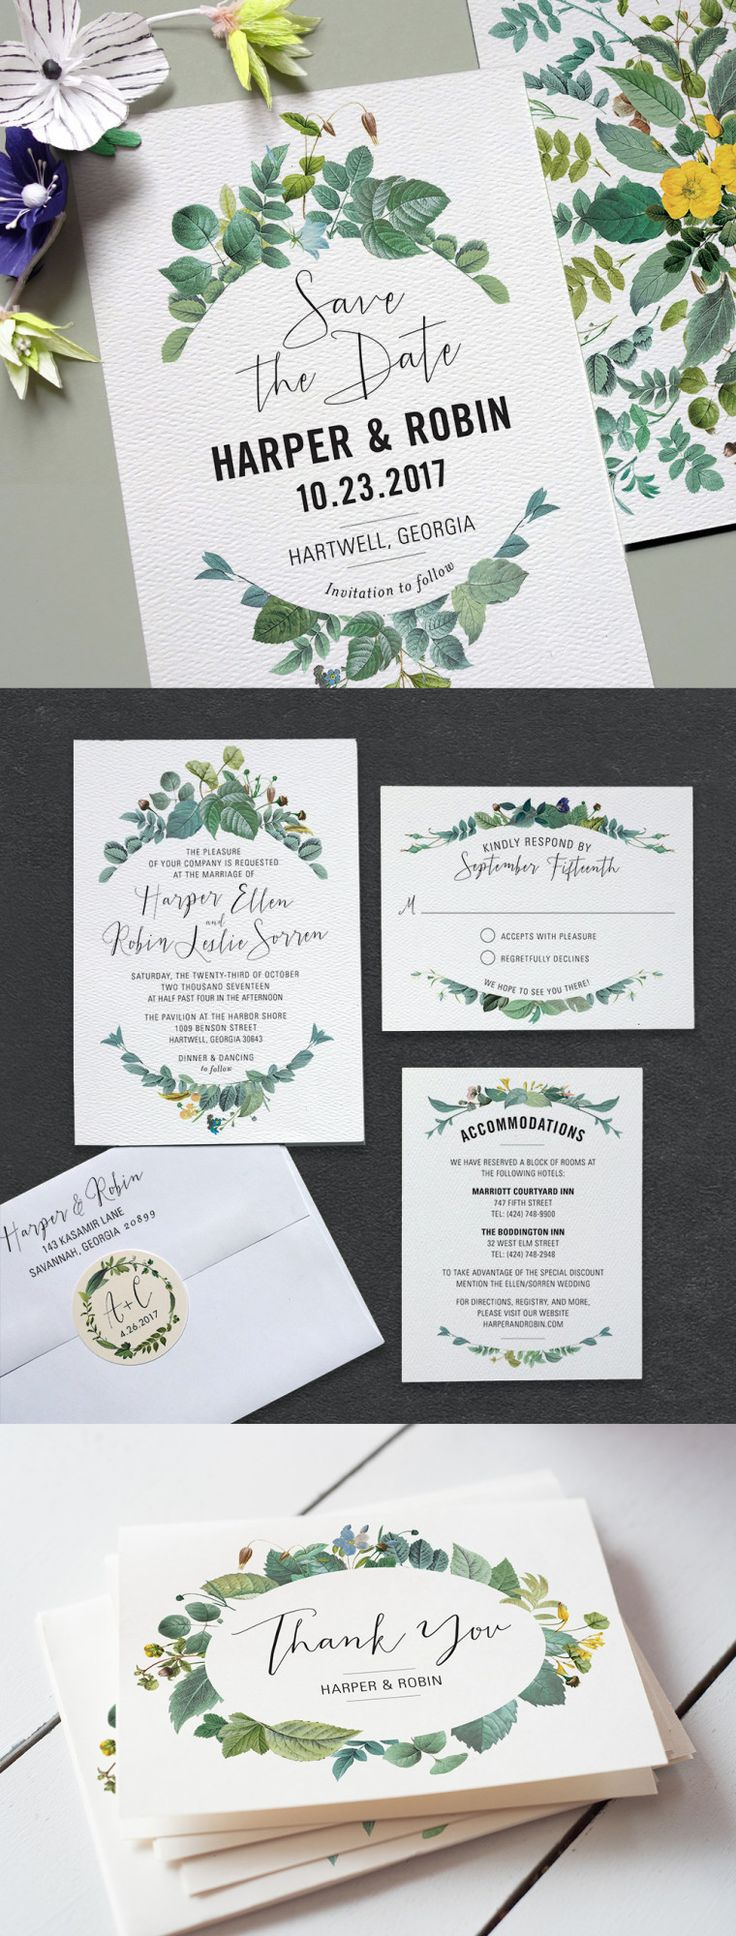 91 Best Wedding Invitations Images On Pinterest Weddings Wedding